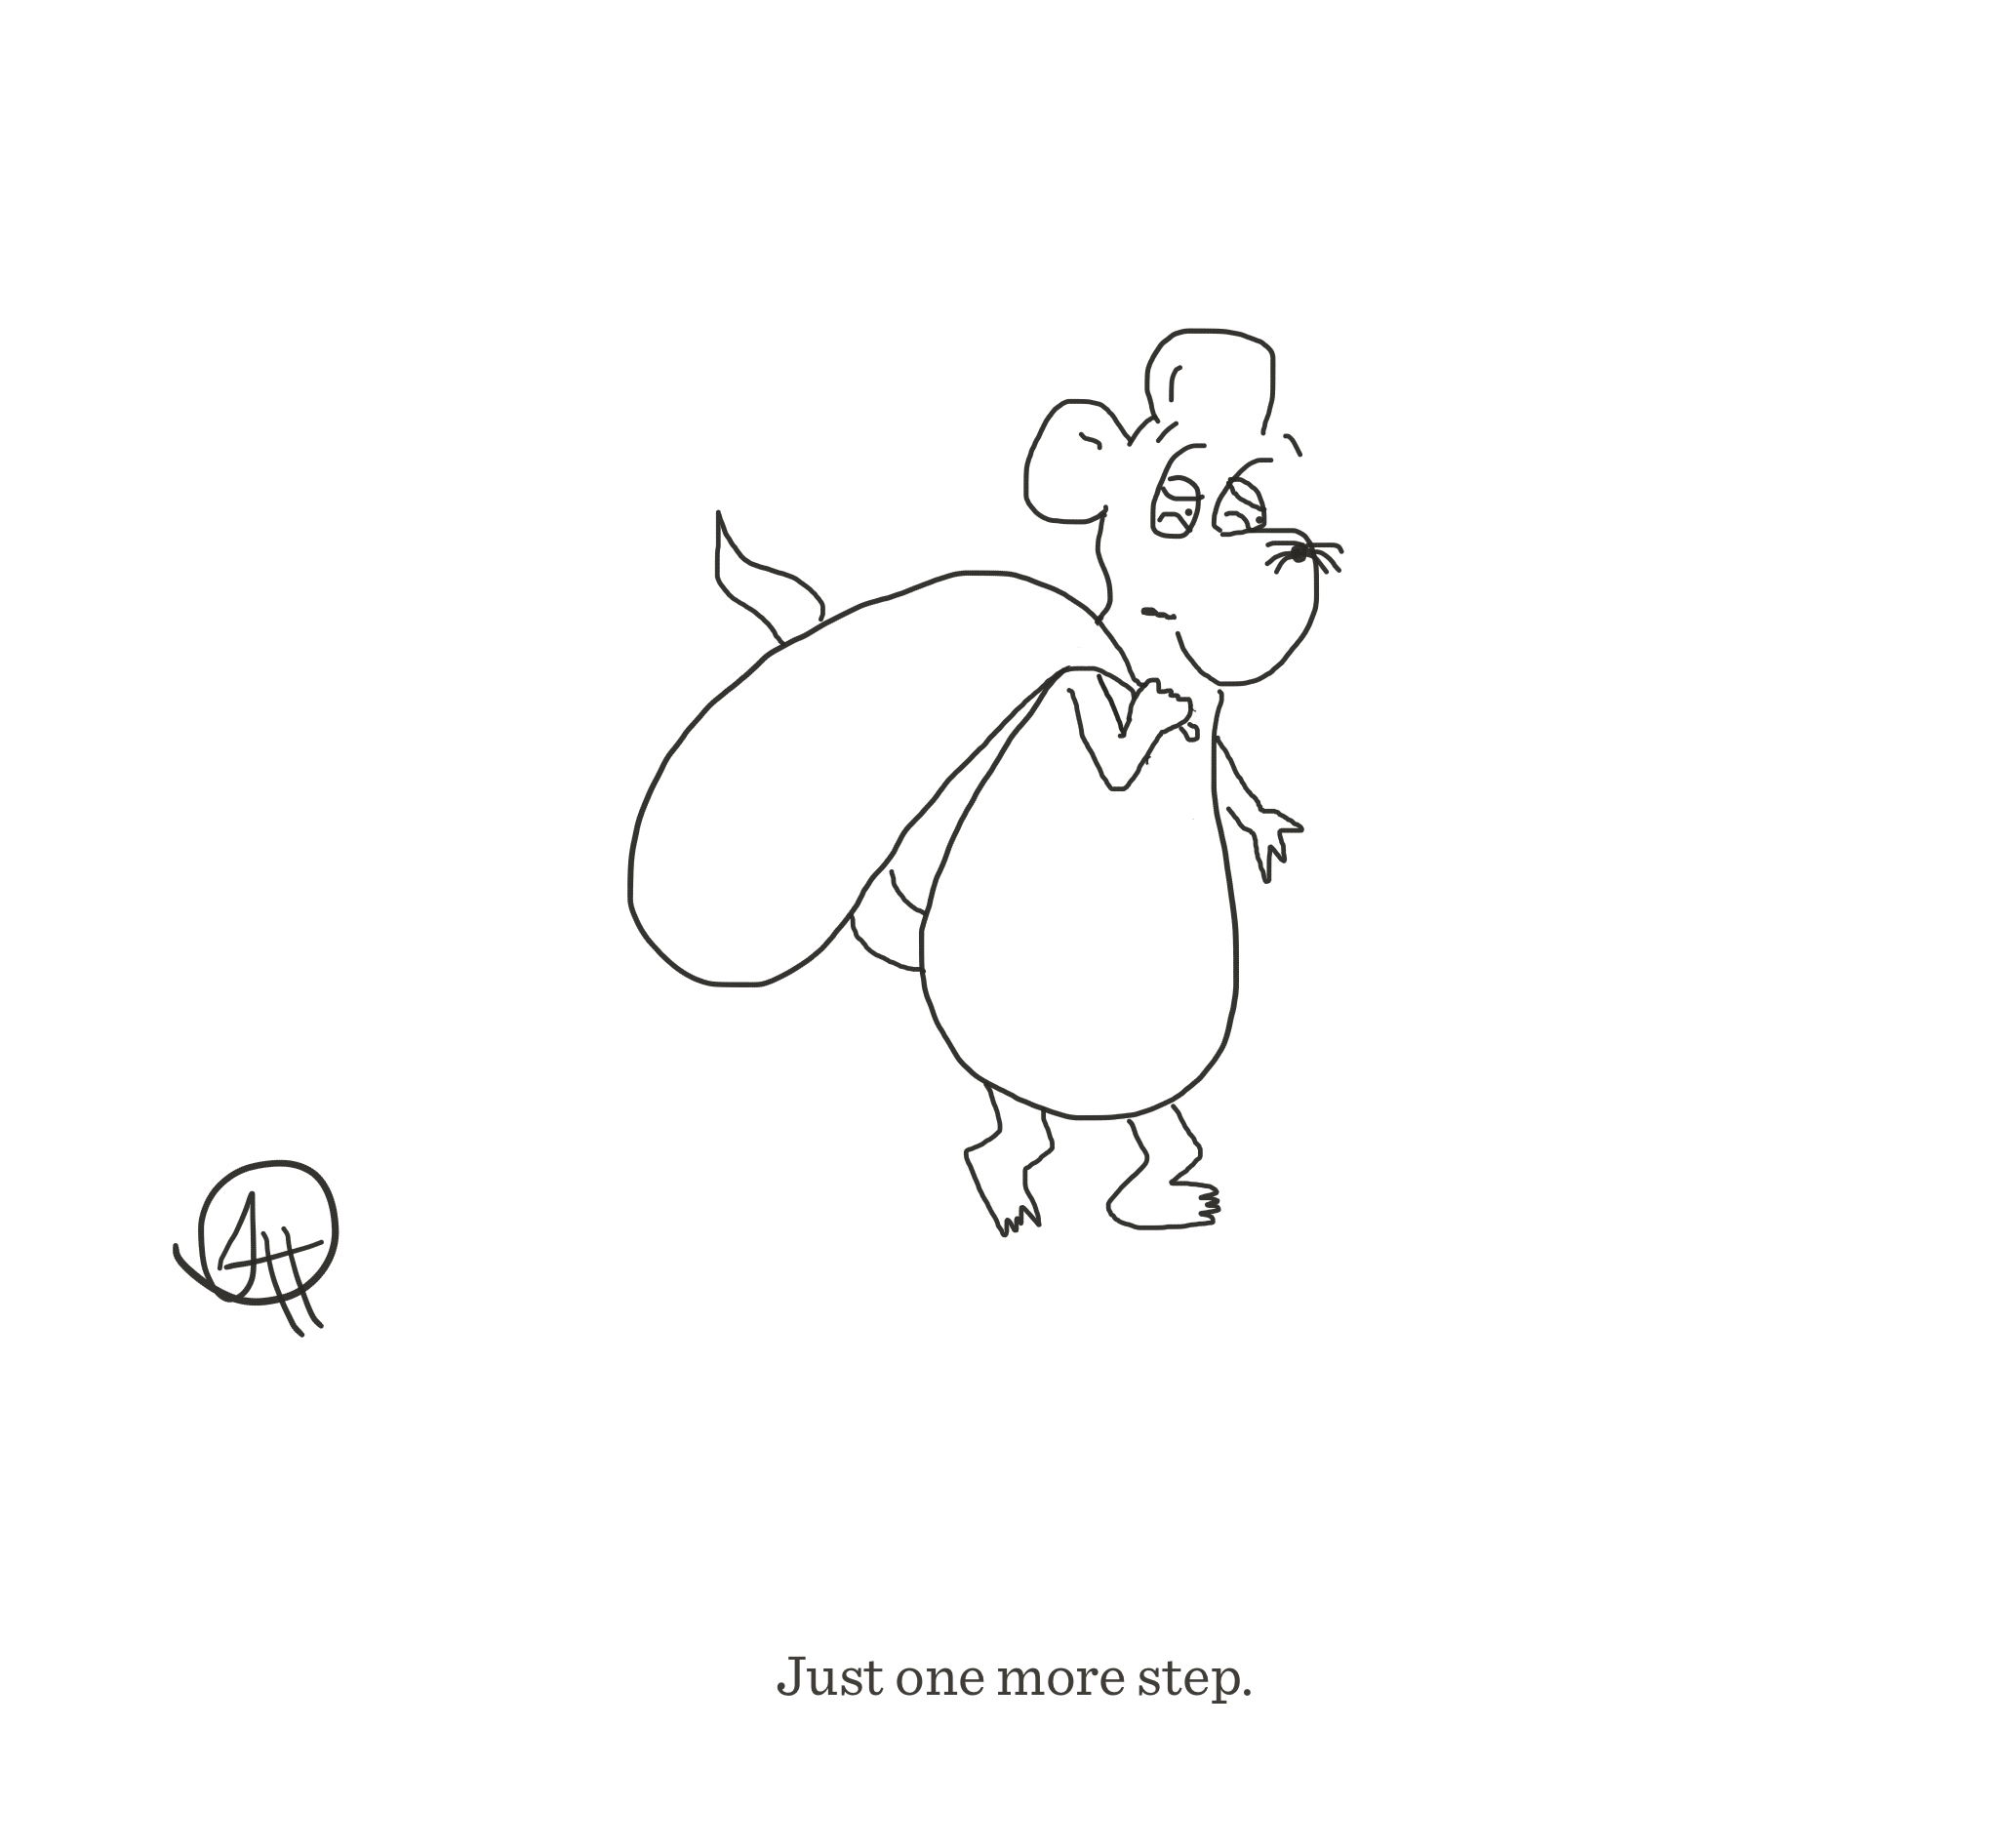 Just one more step, The Happy Rat cartoon